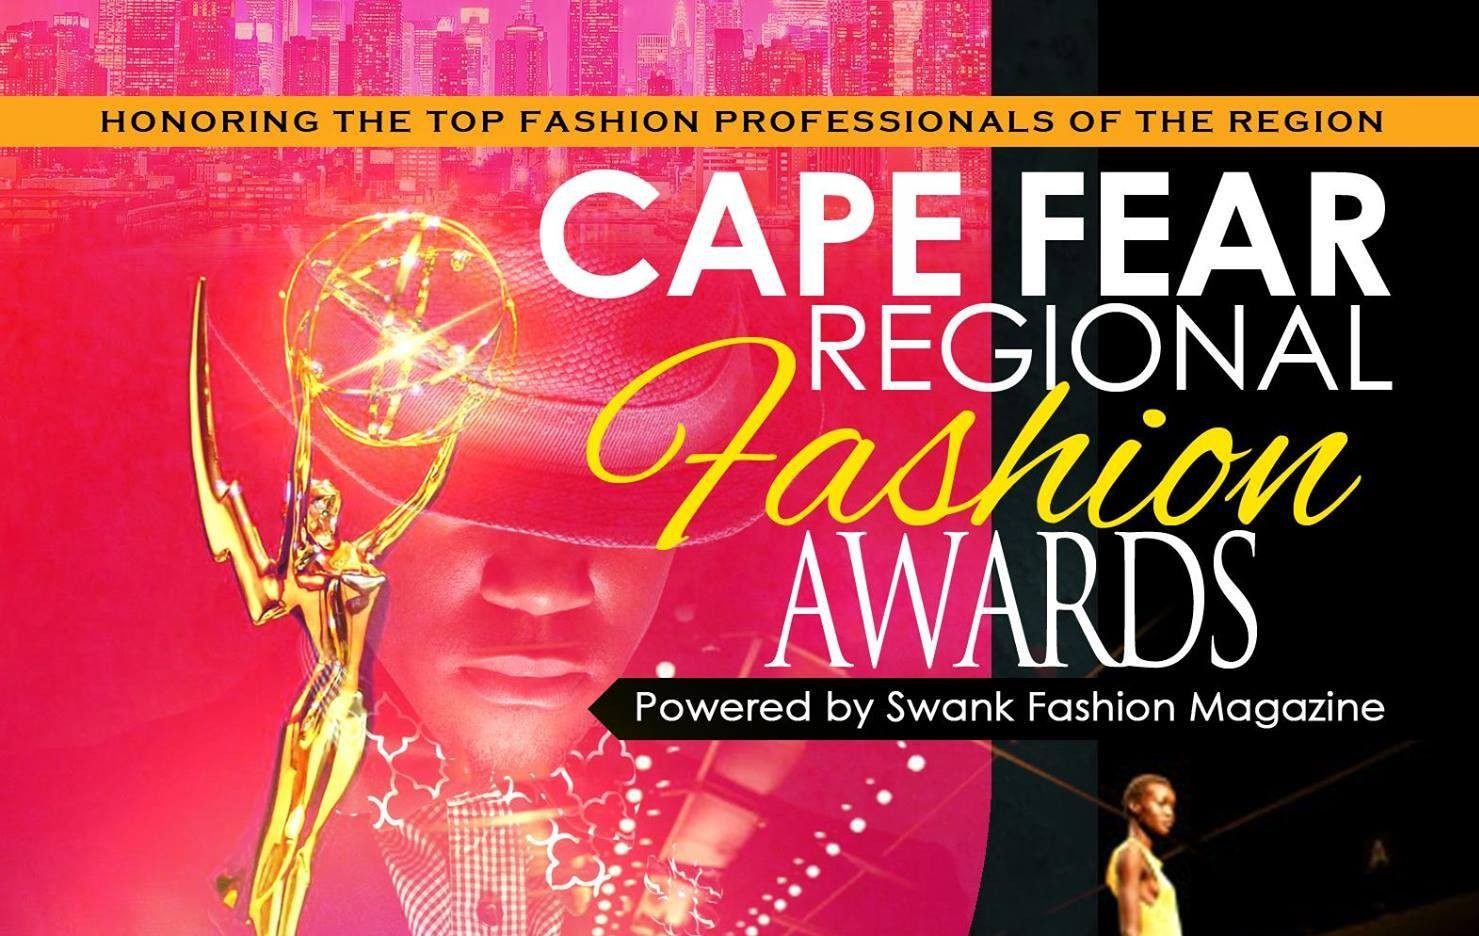 The Cape Fear Regional Fashion Awards took place this past Saturday in Fayetteville, NC